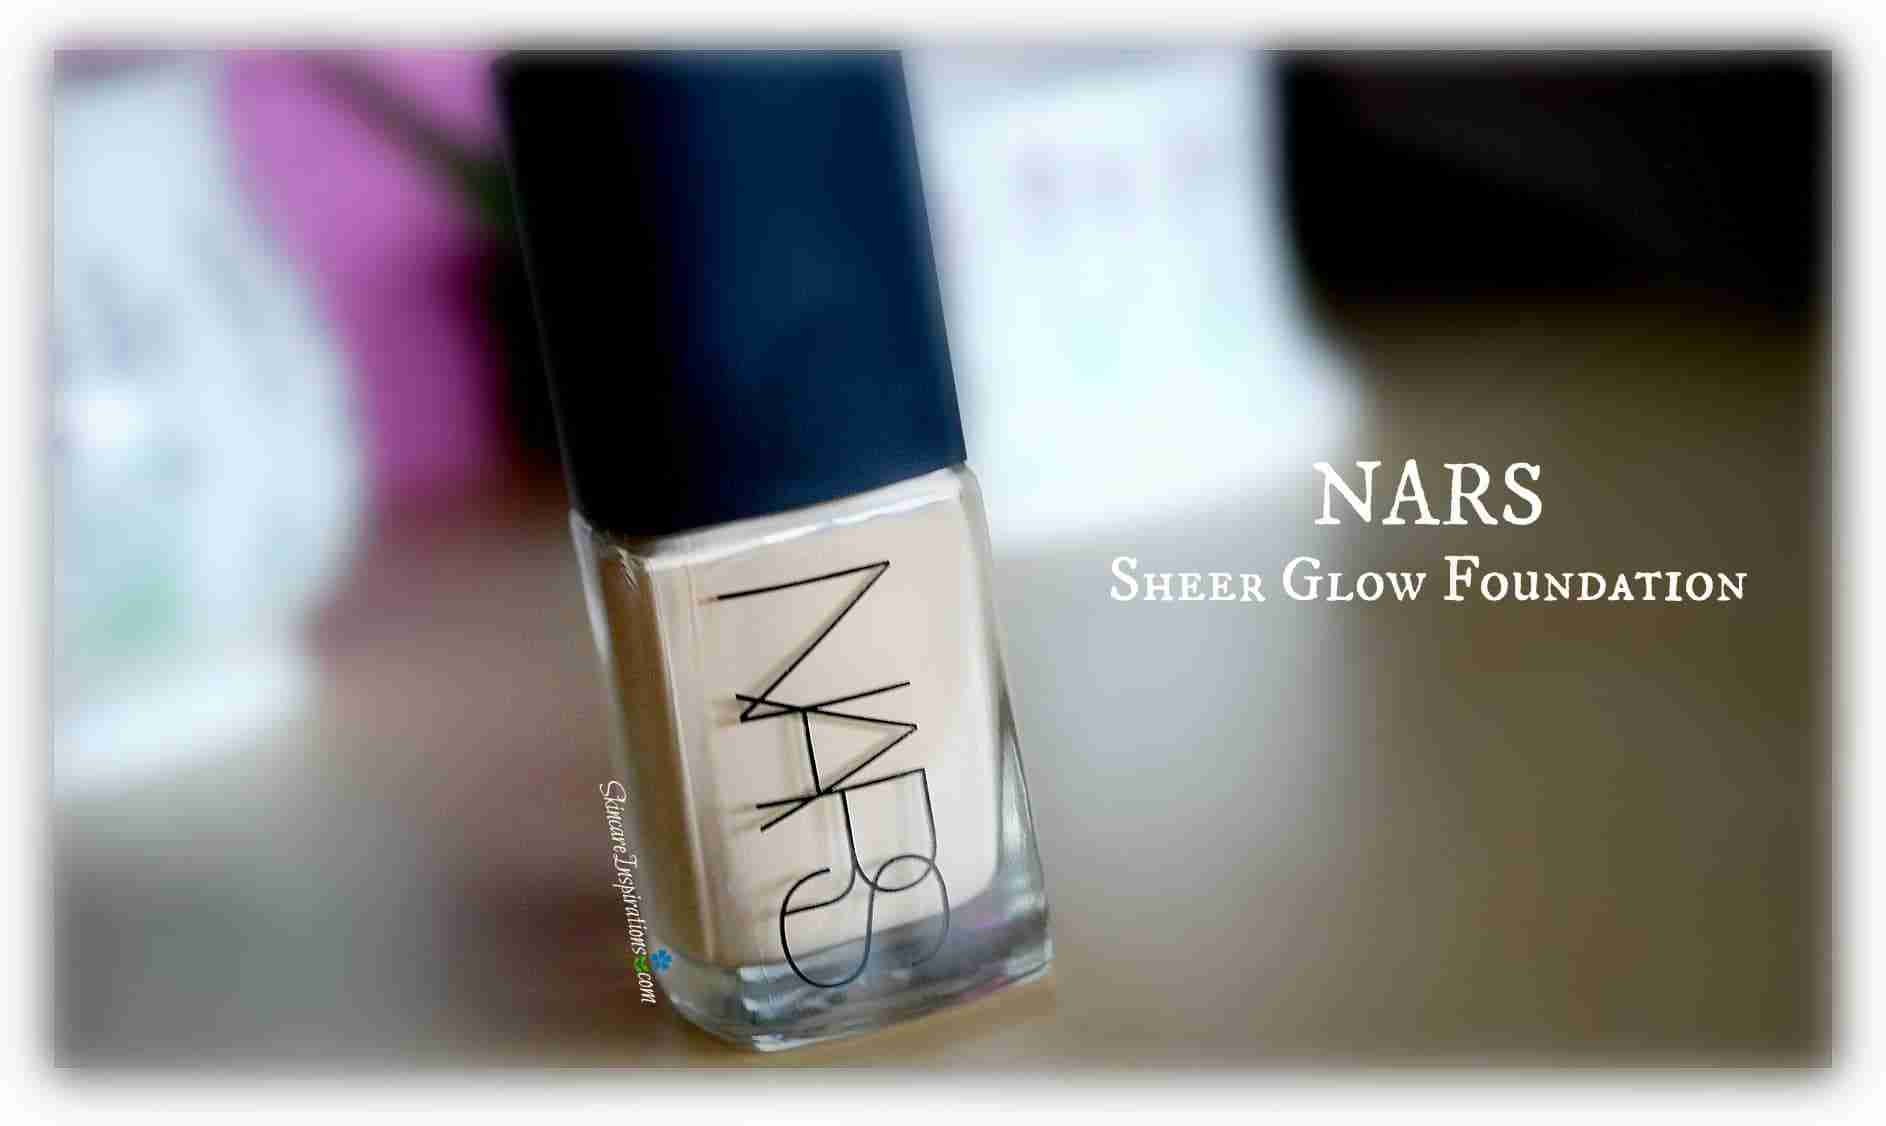 NARS Sheer Glow Foundation Gobi